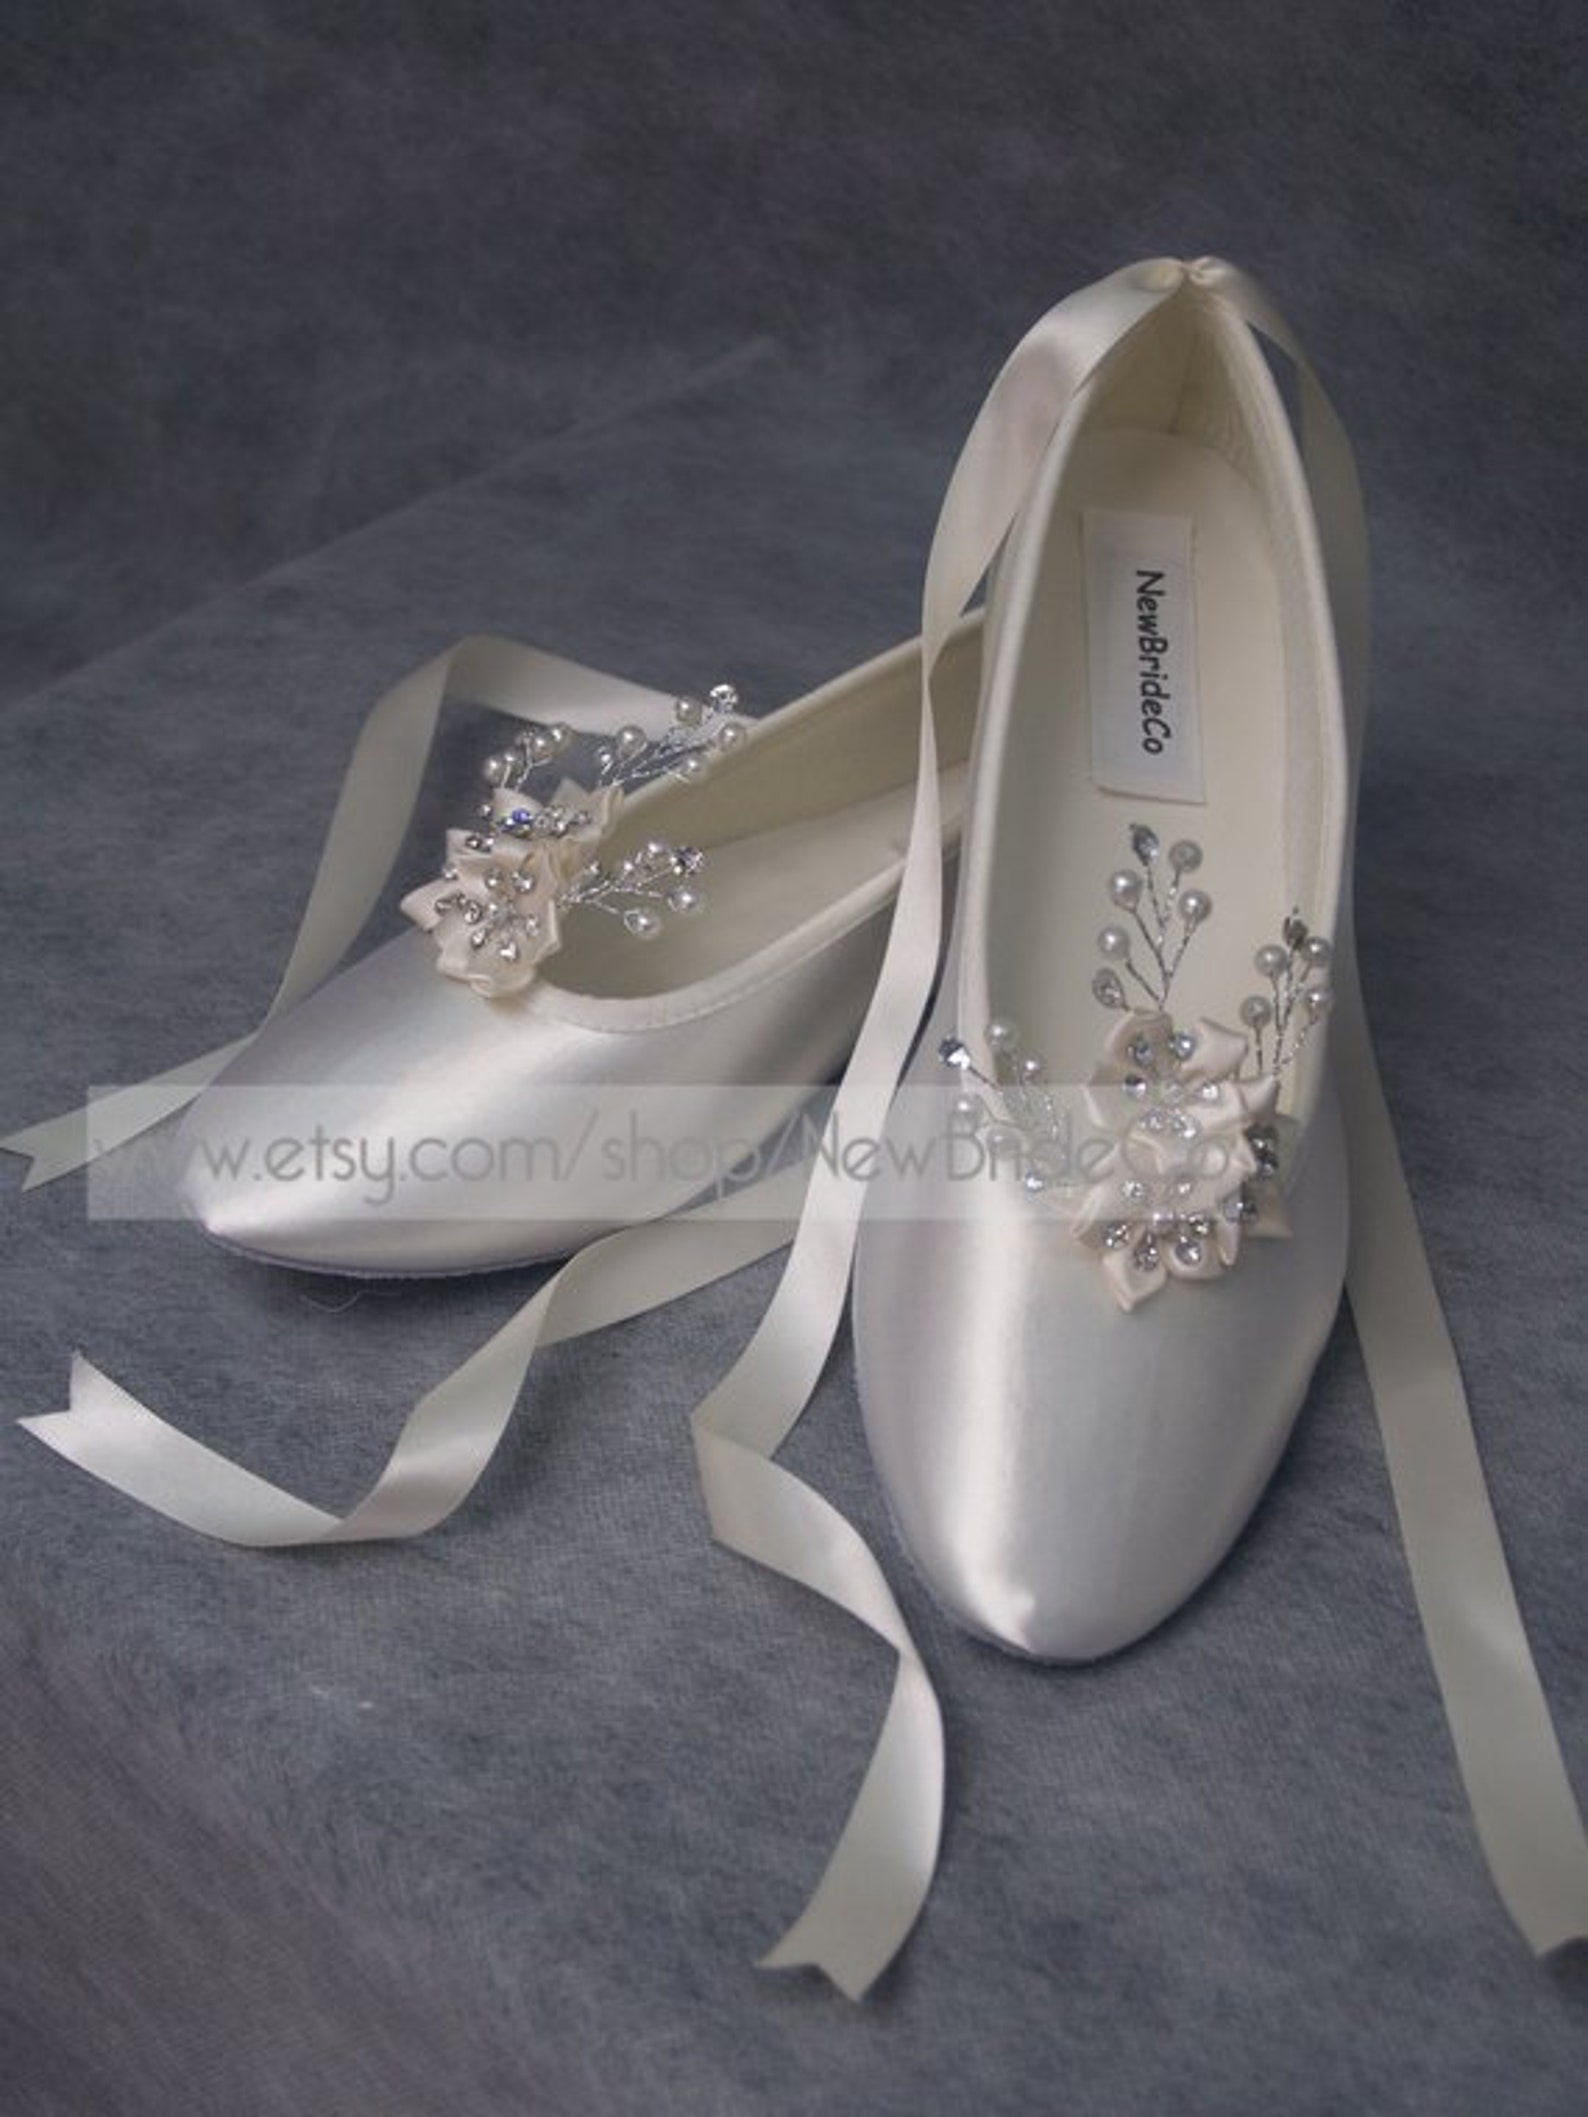 wedding ivory flats crystals and pearls,ballet style ivory slippers, bridal flat shoes ivory, poinsettia,snowflake, romantic, la